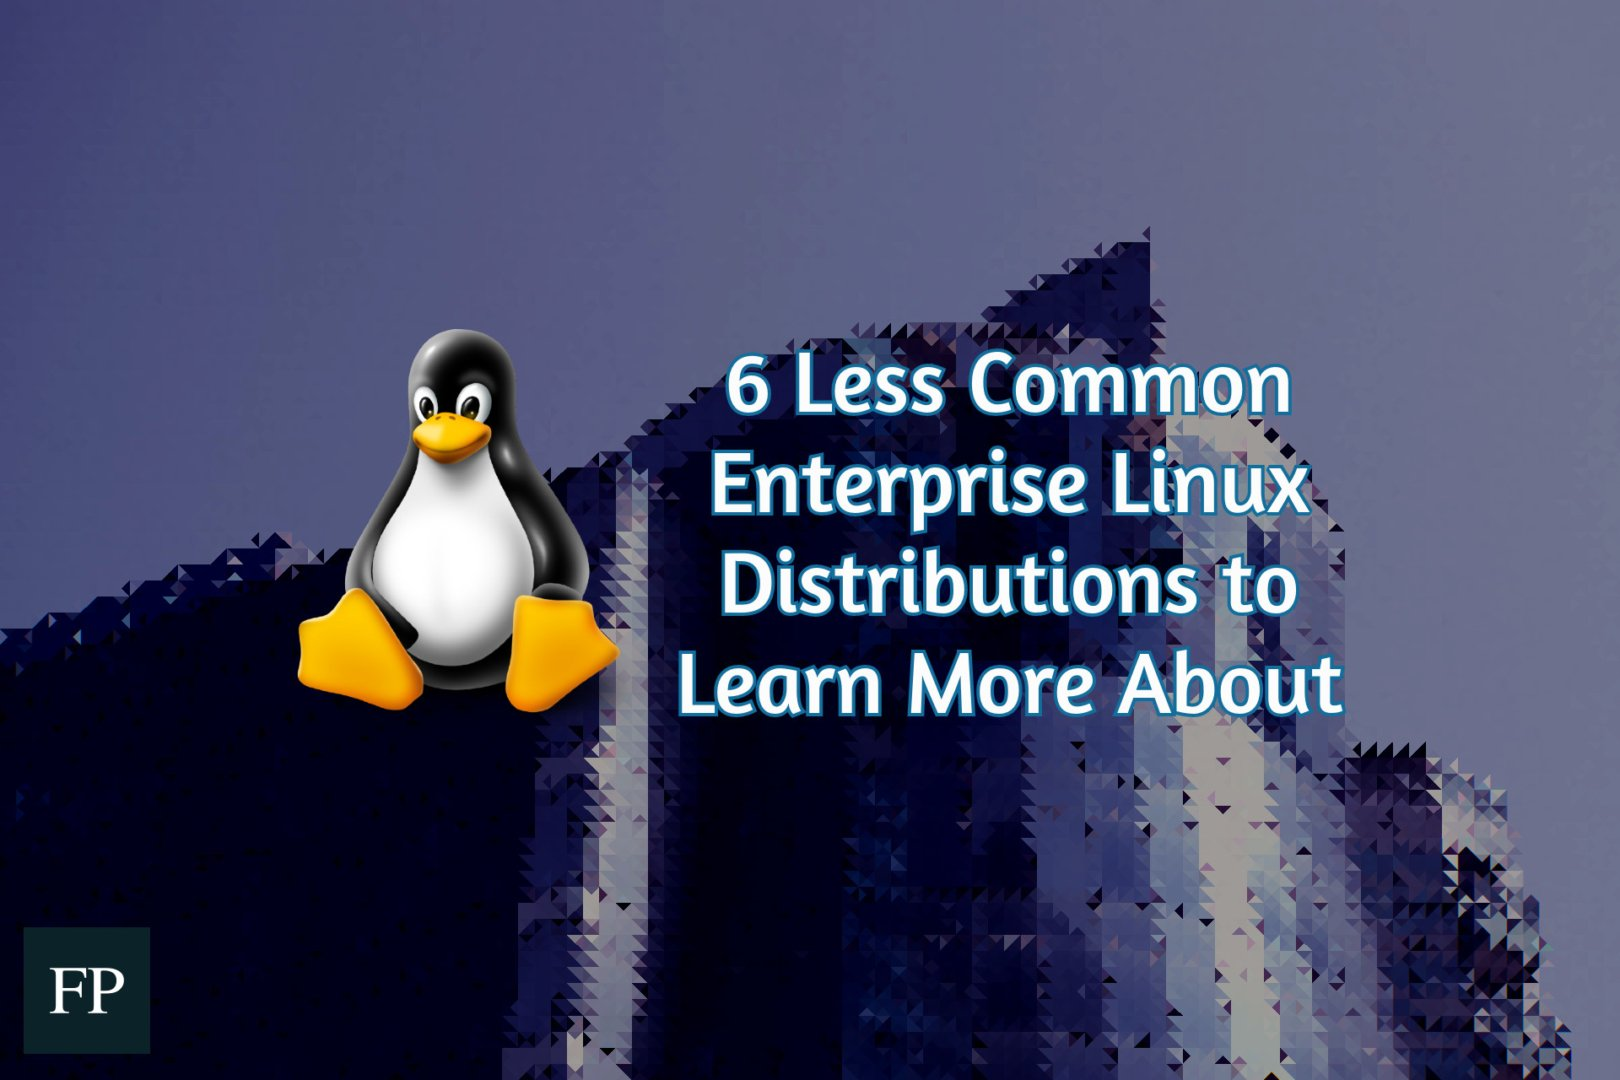 enterprise linux 197 February 13, 2020